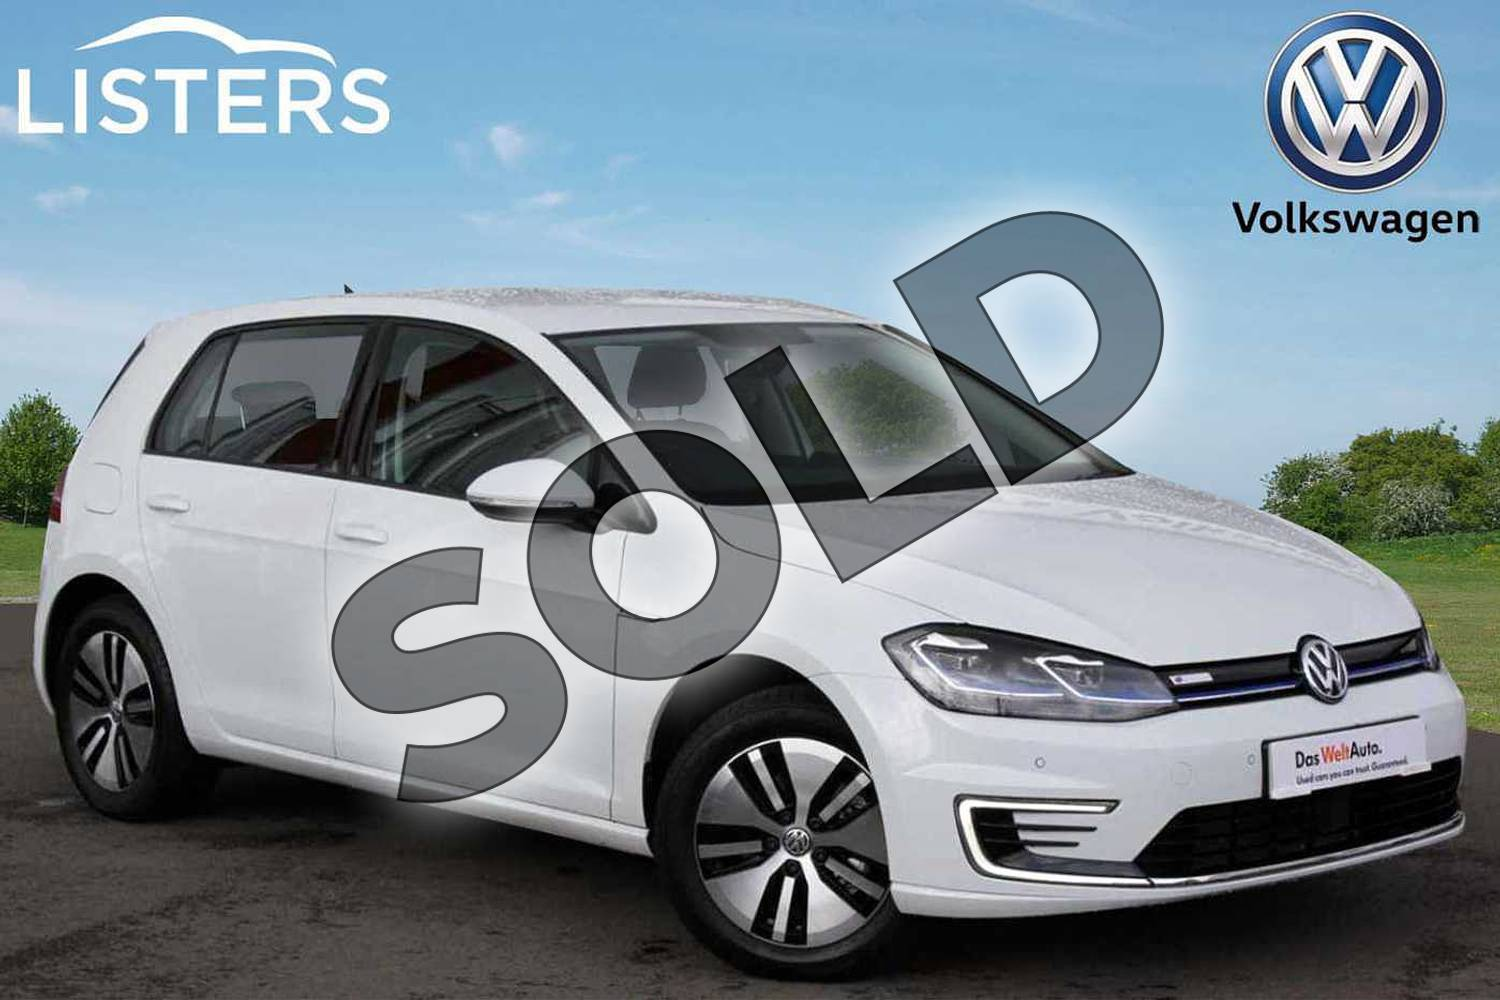 2019 Volkswagen Golf Hatchback 99kW e-Golf 35kWh 5dr Auto in Pure white at Listers Volkswagen Nuneaton